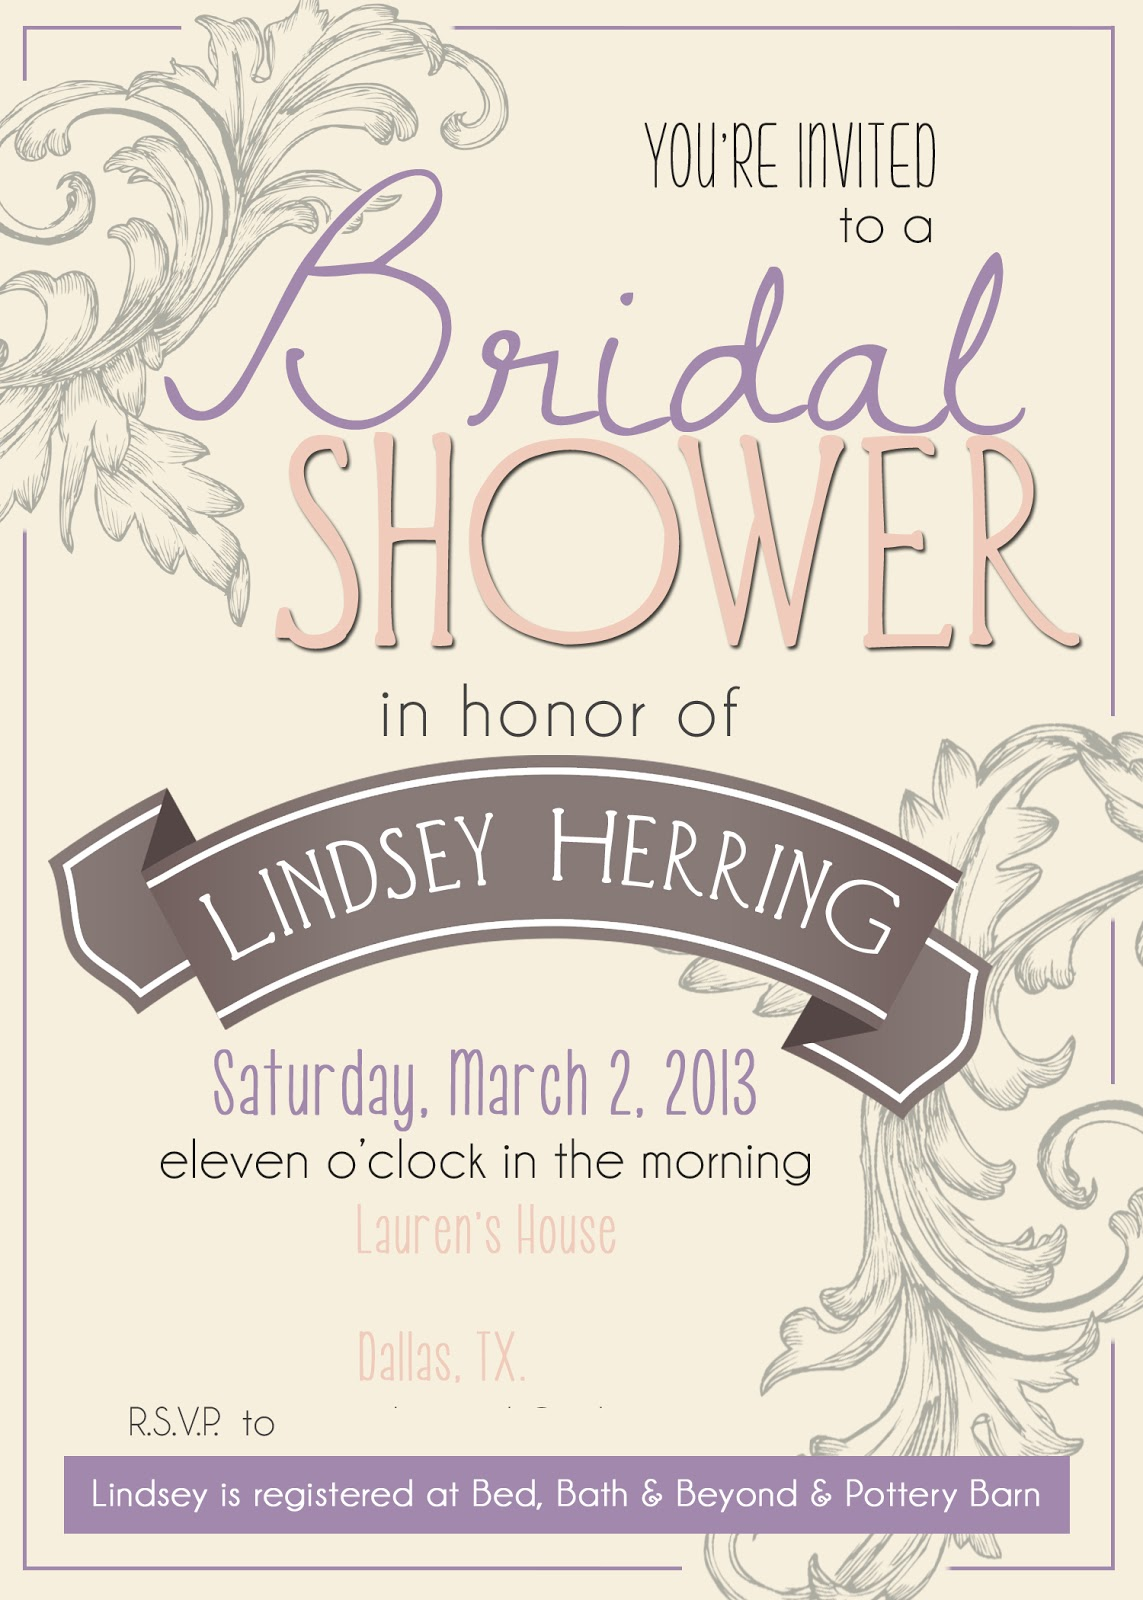 a girly bridal shower etsy wedding shower invitations We found these adorable invitations on Etsy and ordered them right away